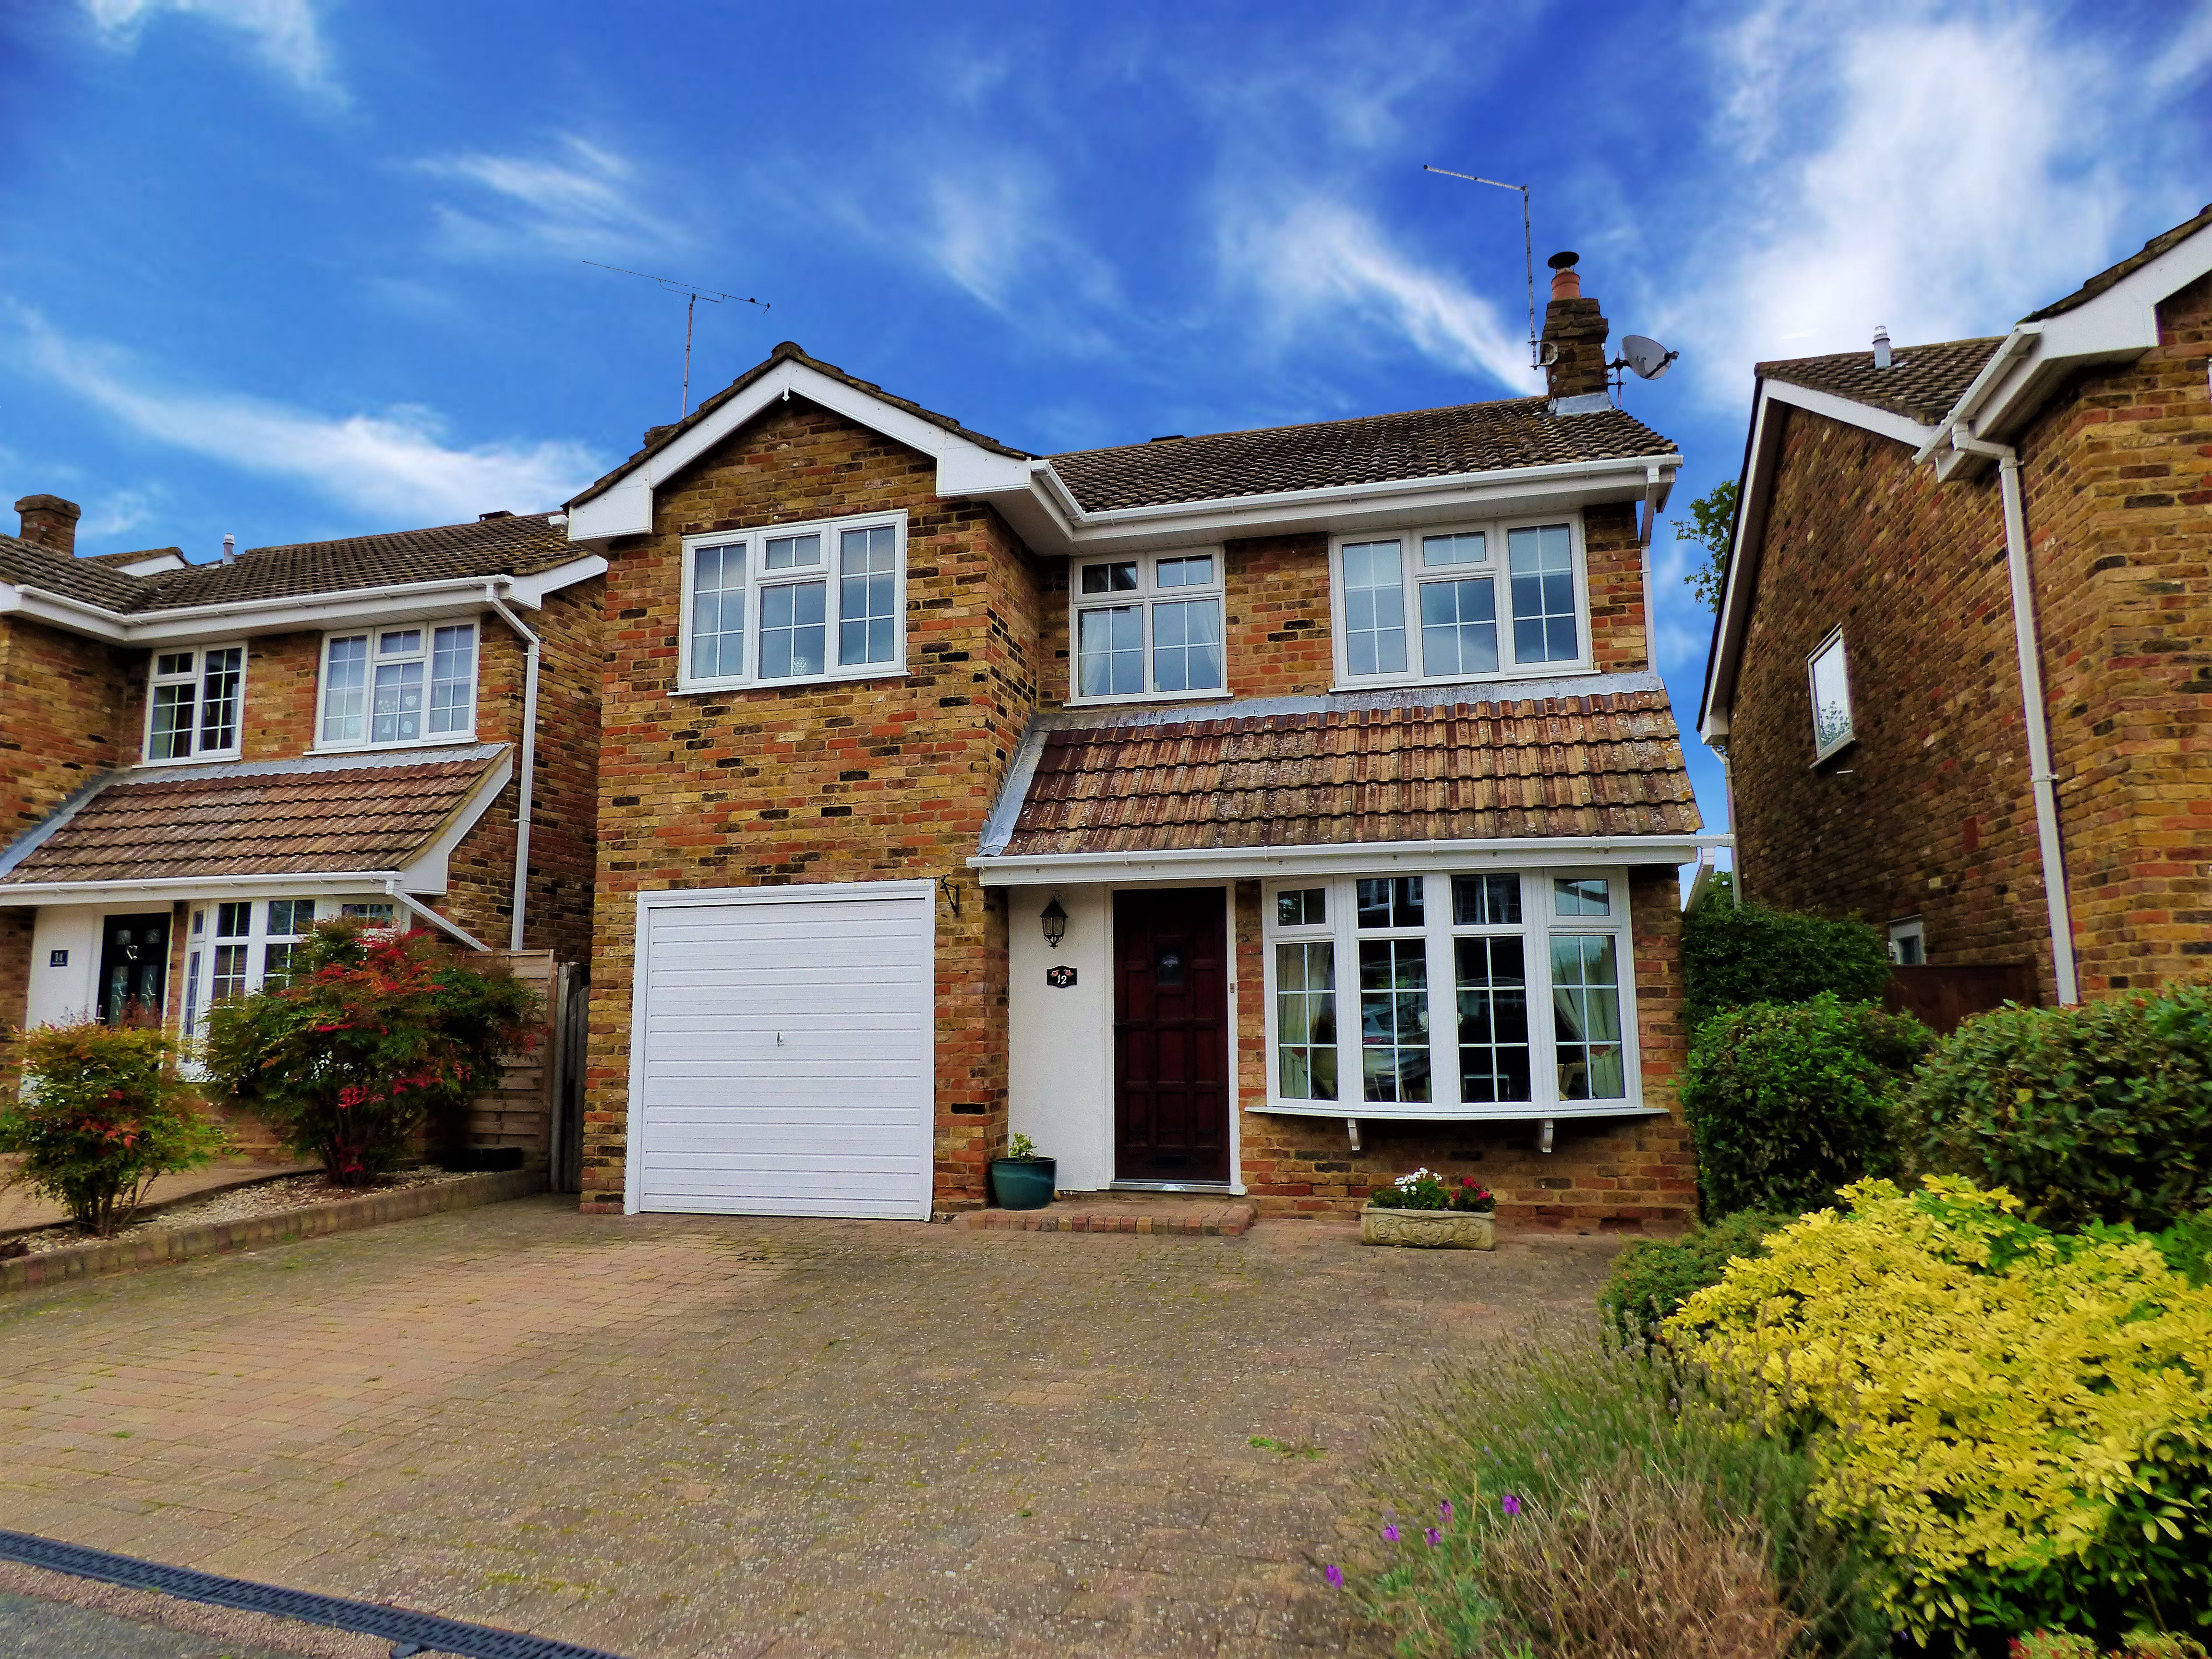 4 bed house for sale in Brooklands, Wickford, SS12